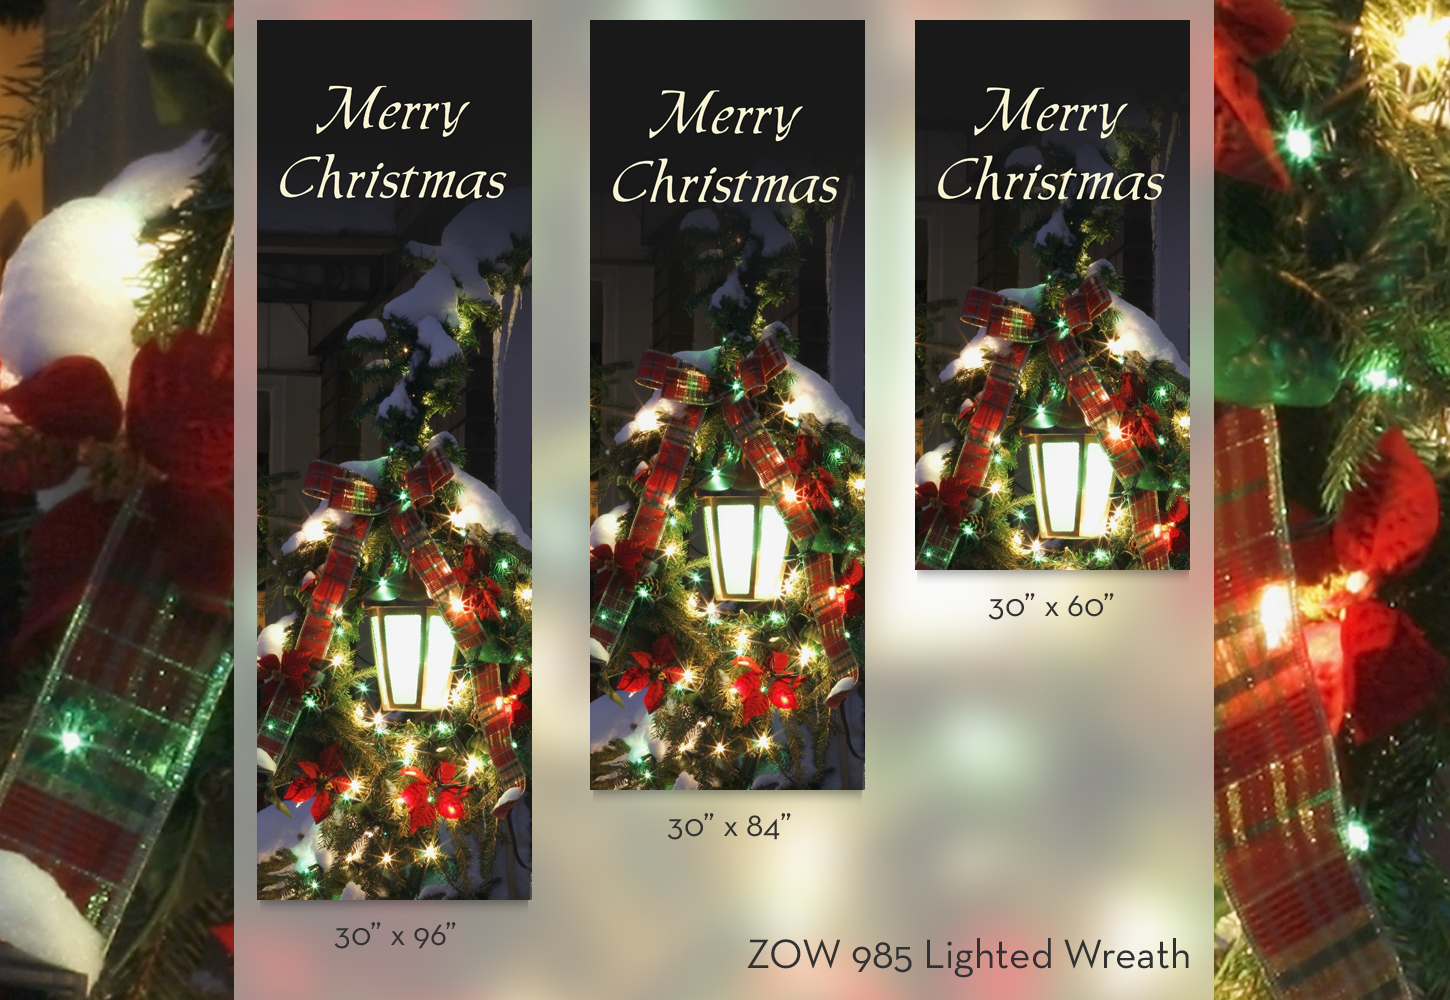 ZOW 985 Lighted Wreath